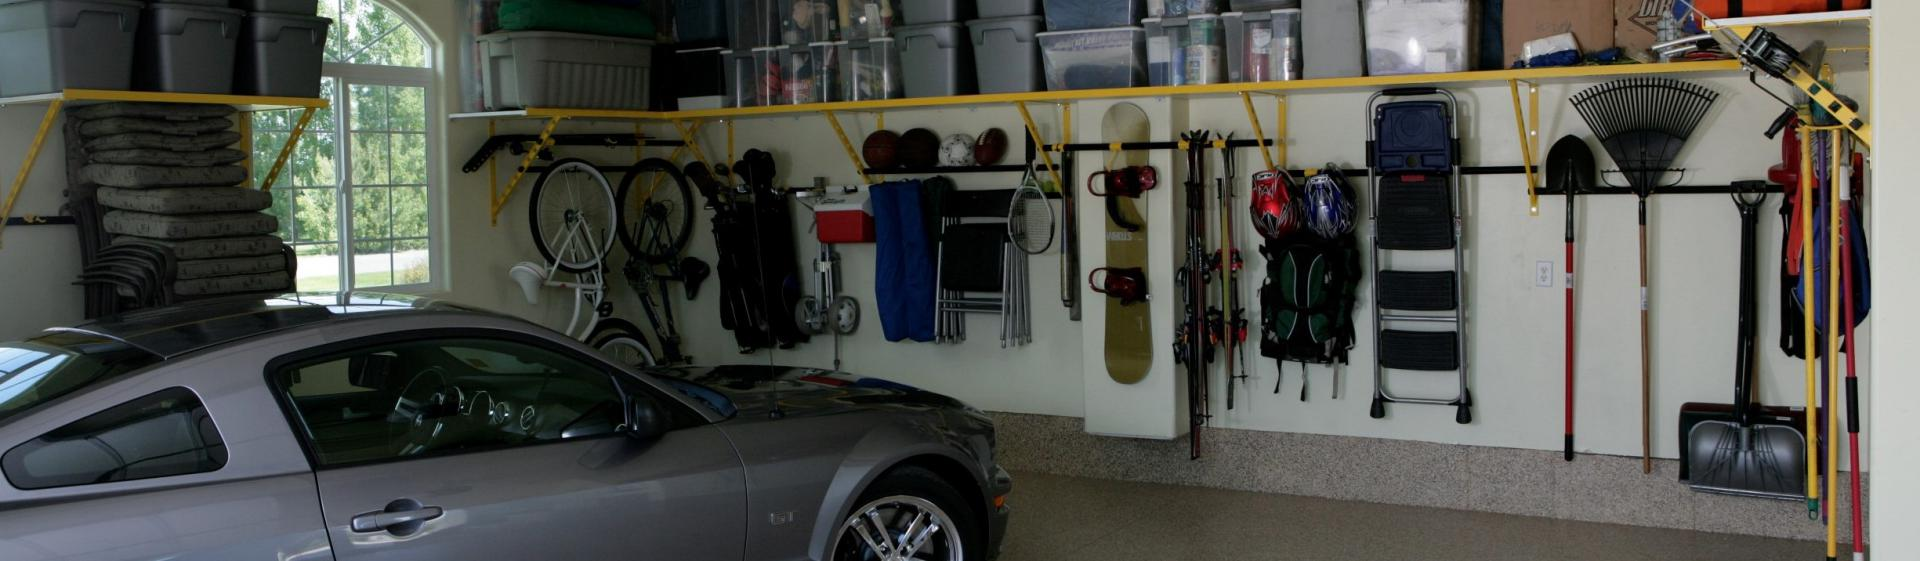 Garage Storage System >> 8 Best Garage Storage Systems Jul 2019 Reviews Buying Guide